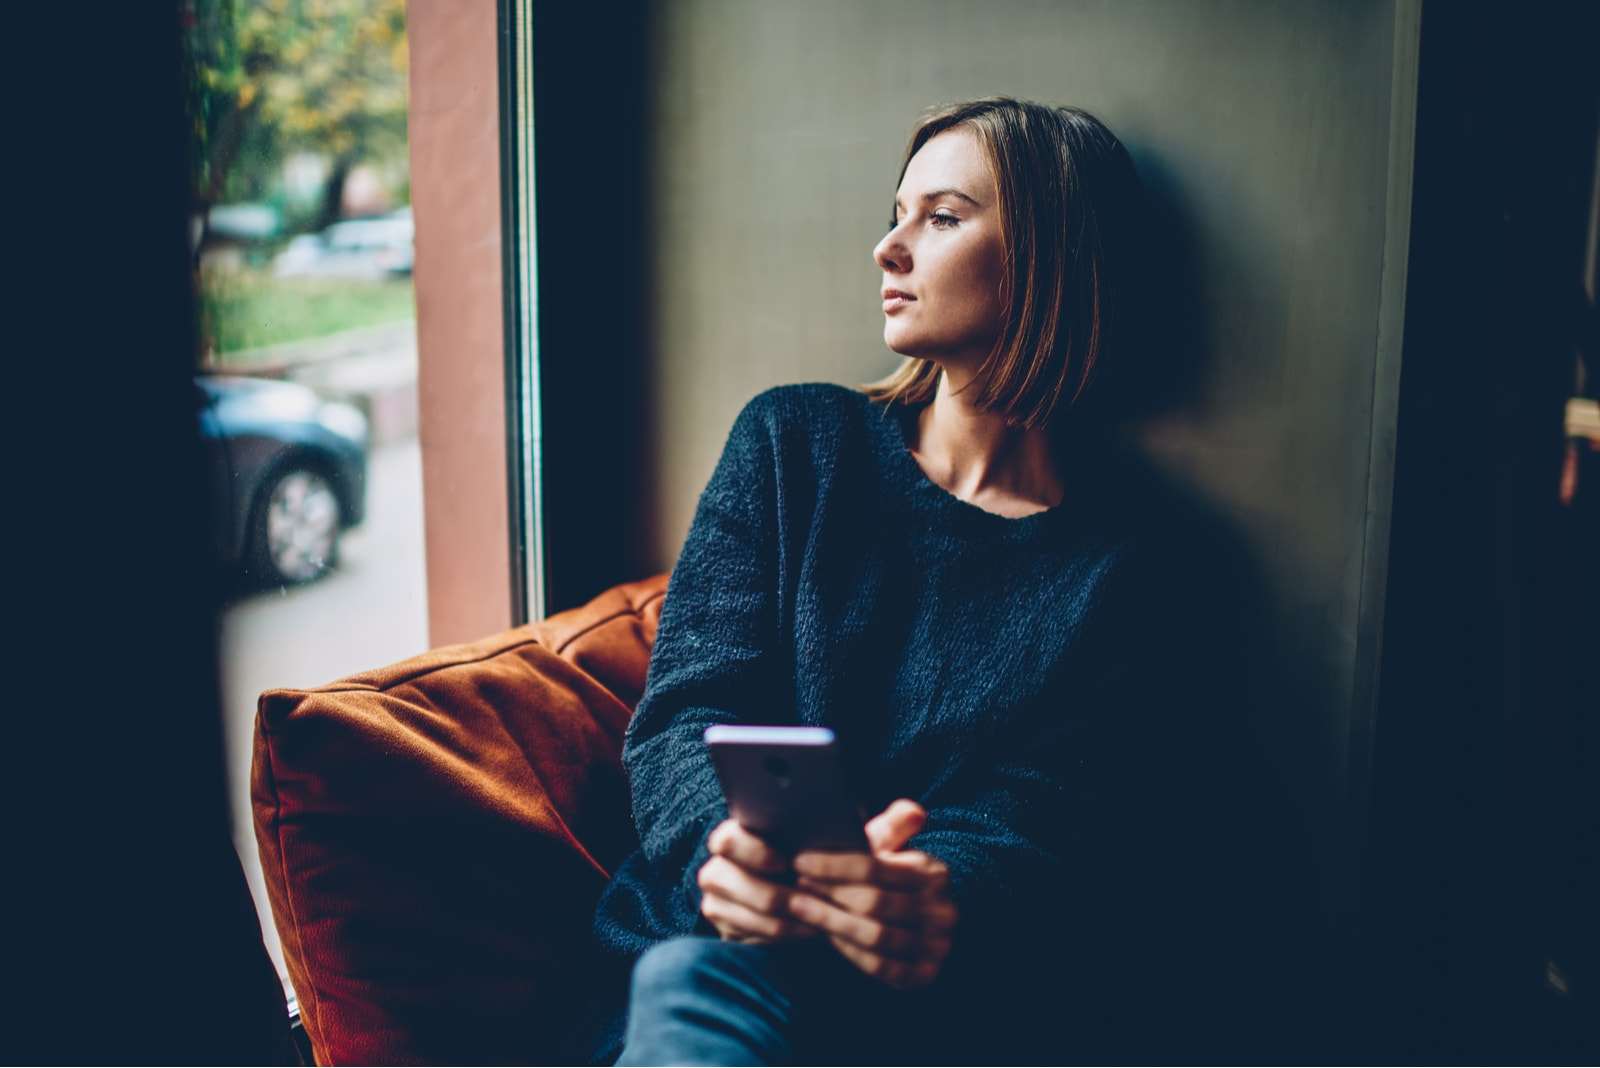 Woman dressed in black casual outfit looking out the window